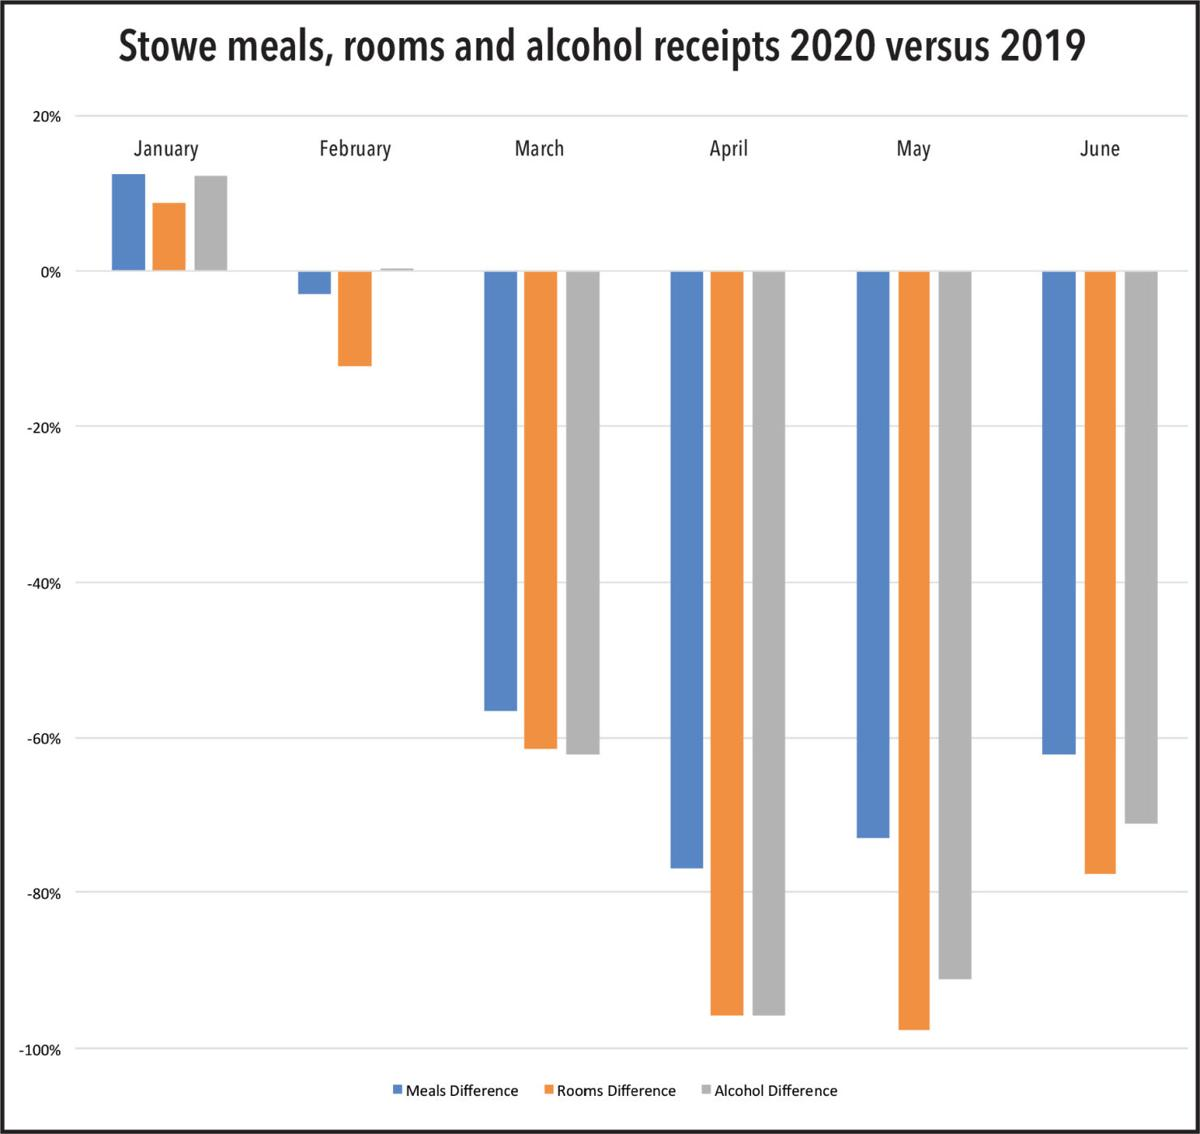 Stowe meals, rooms and alcohol receipts 2020 versus 2019